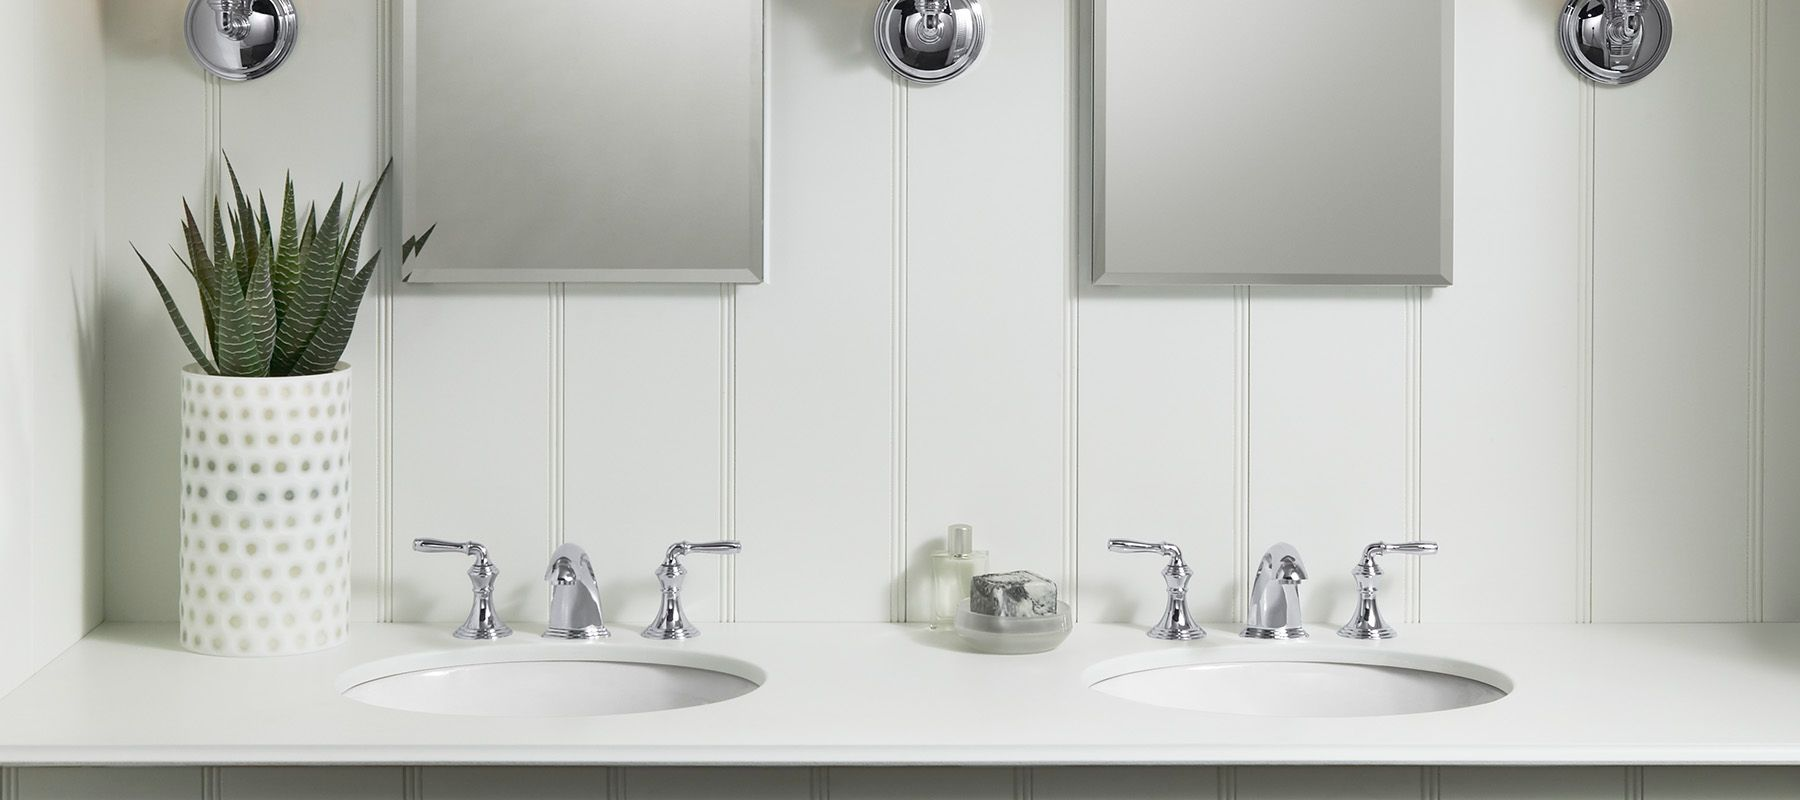 Drop-in Bathroom Sinks | Bathroom | KOHLER on bathroom sink with water, bathroom sinks kohler toilet colors, bathroom vanity wall mirror, bathroom fixtures by kohler, bathroom drop in sink closeout,